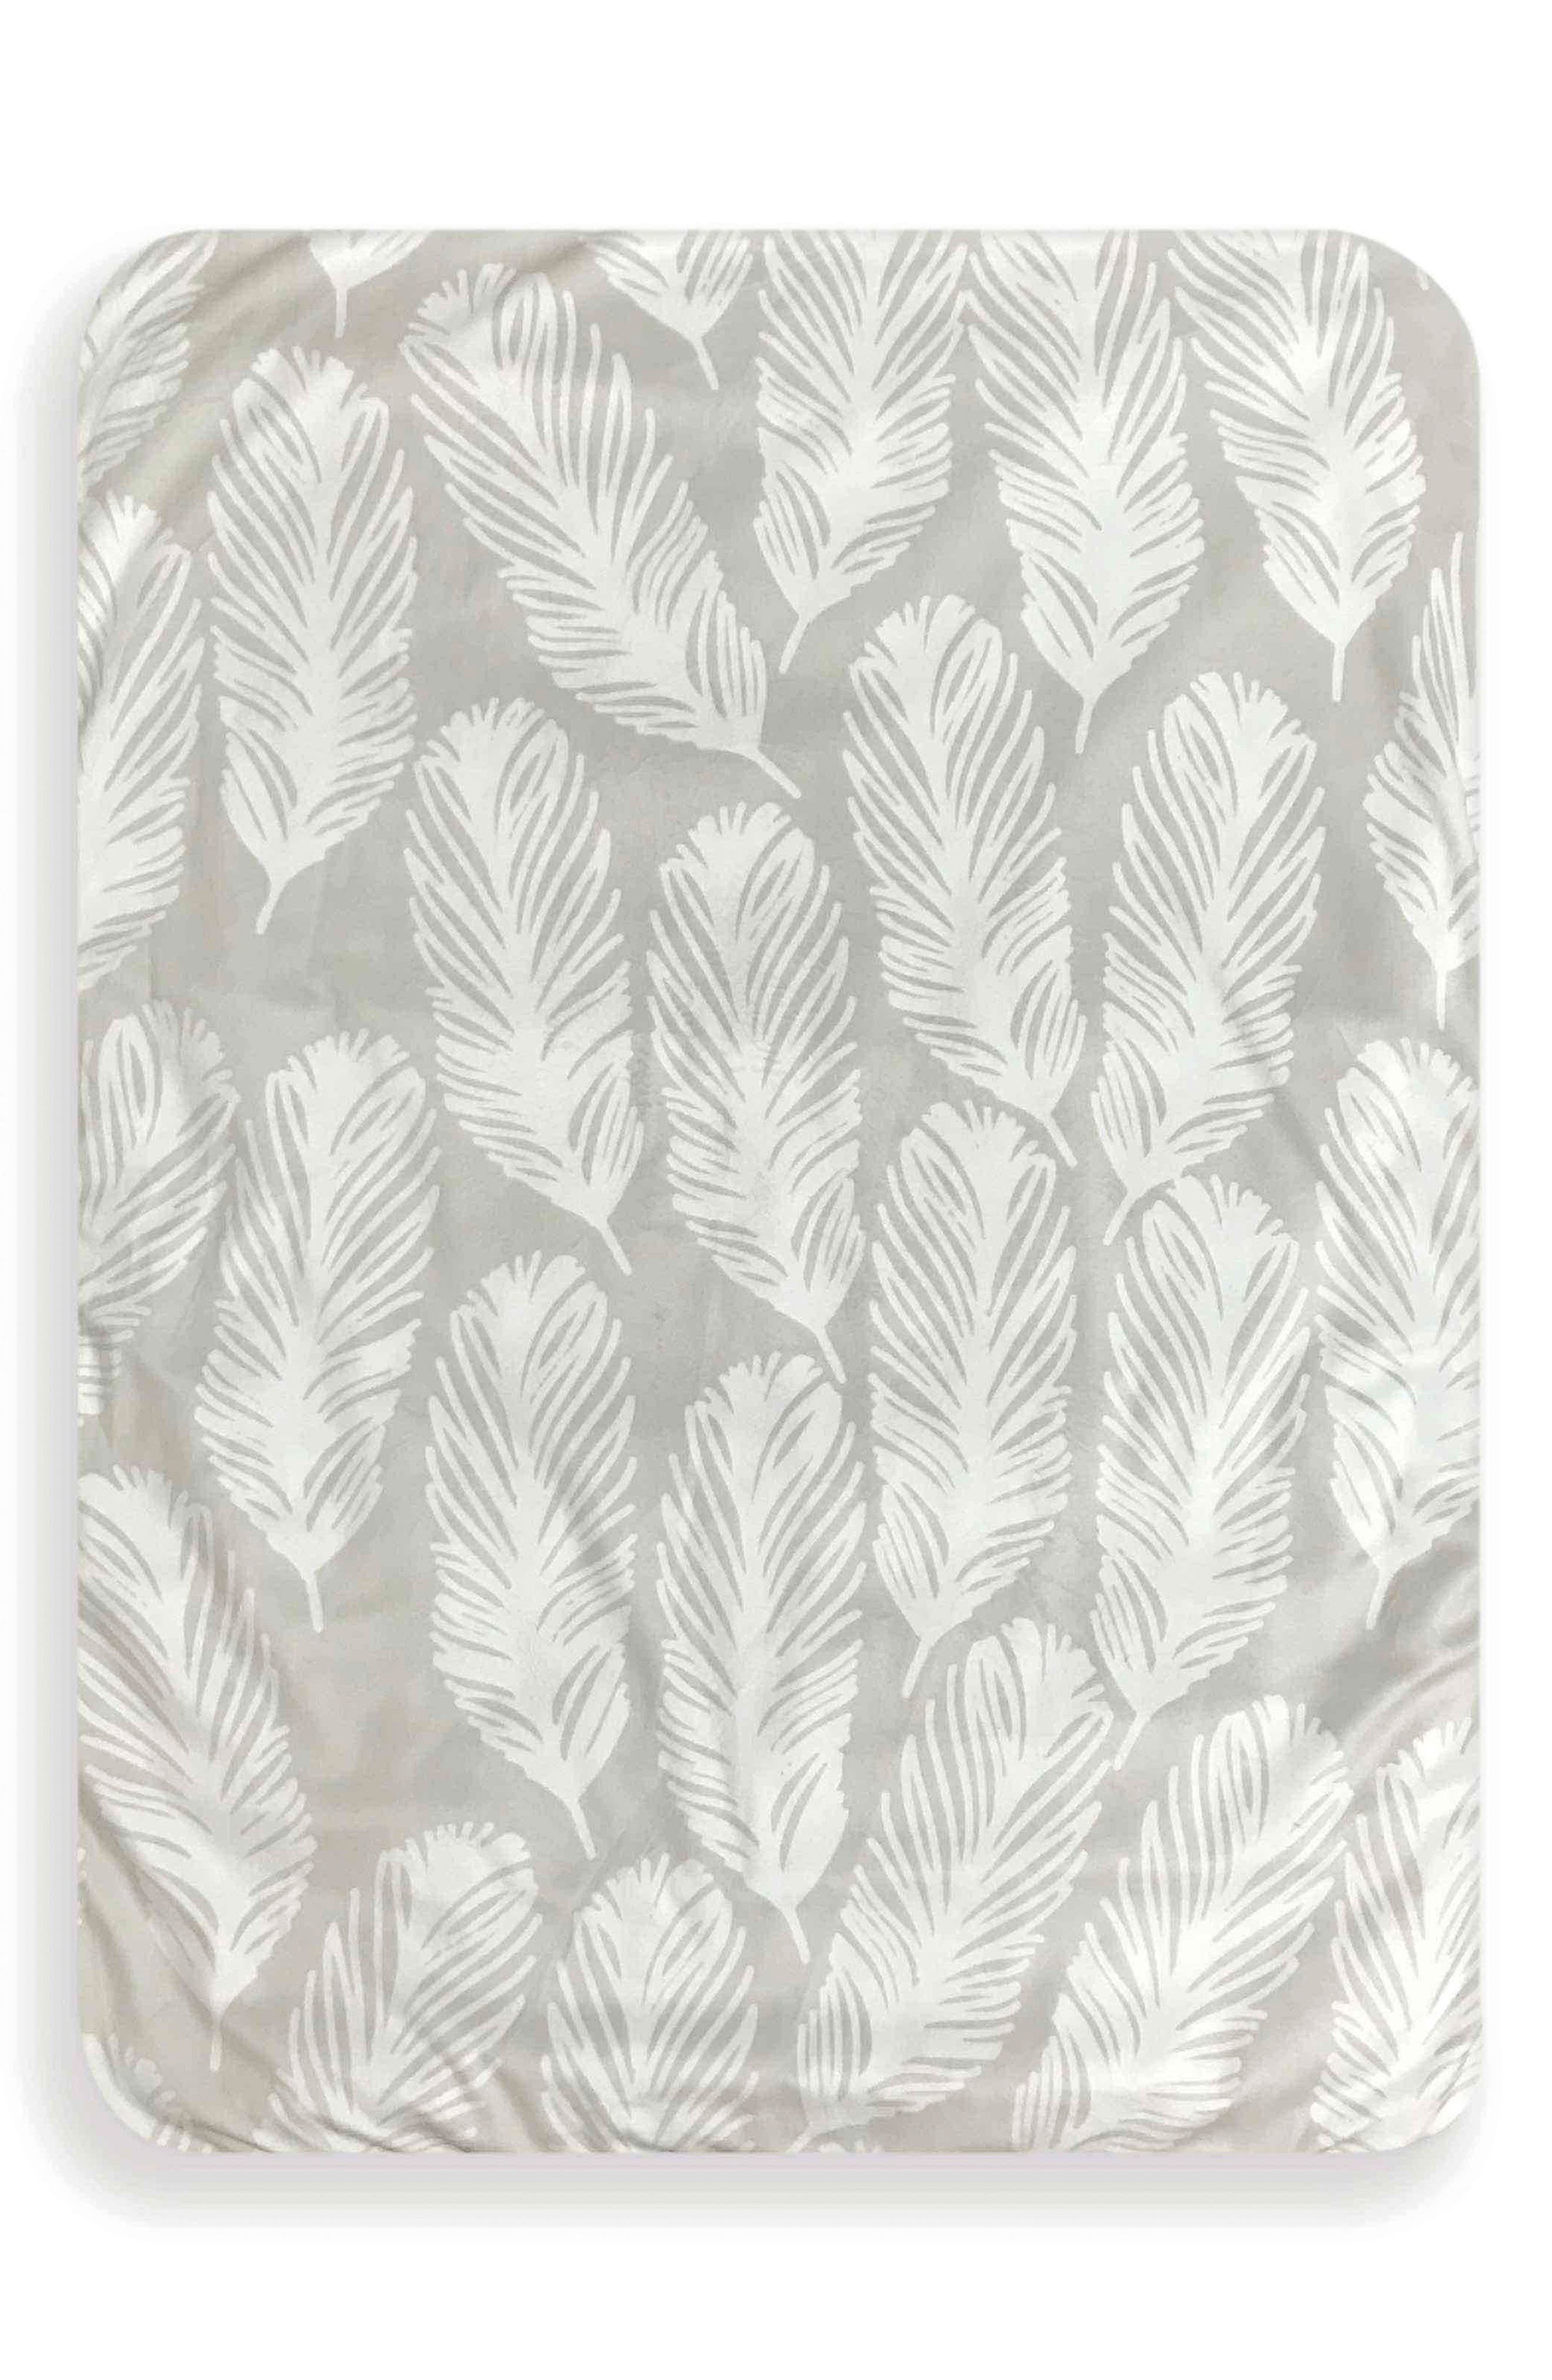 Feathers & Forest Play Mat,                             Main thumbnail 1, color,                             TAUPE AND WHITE